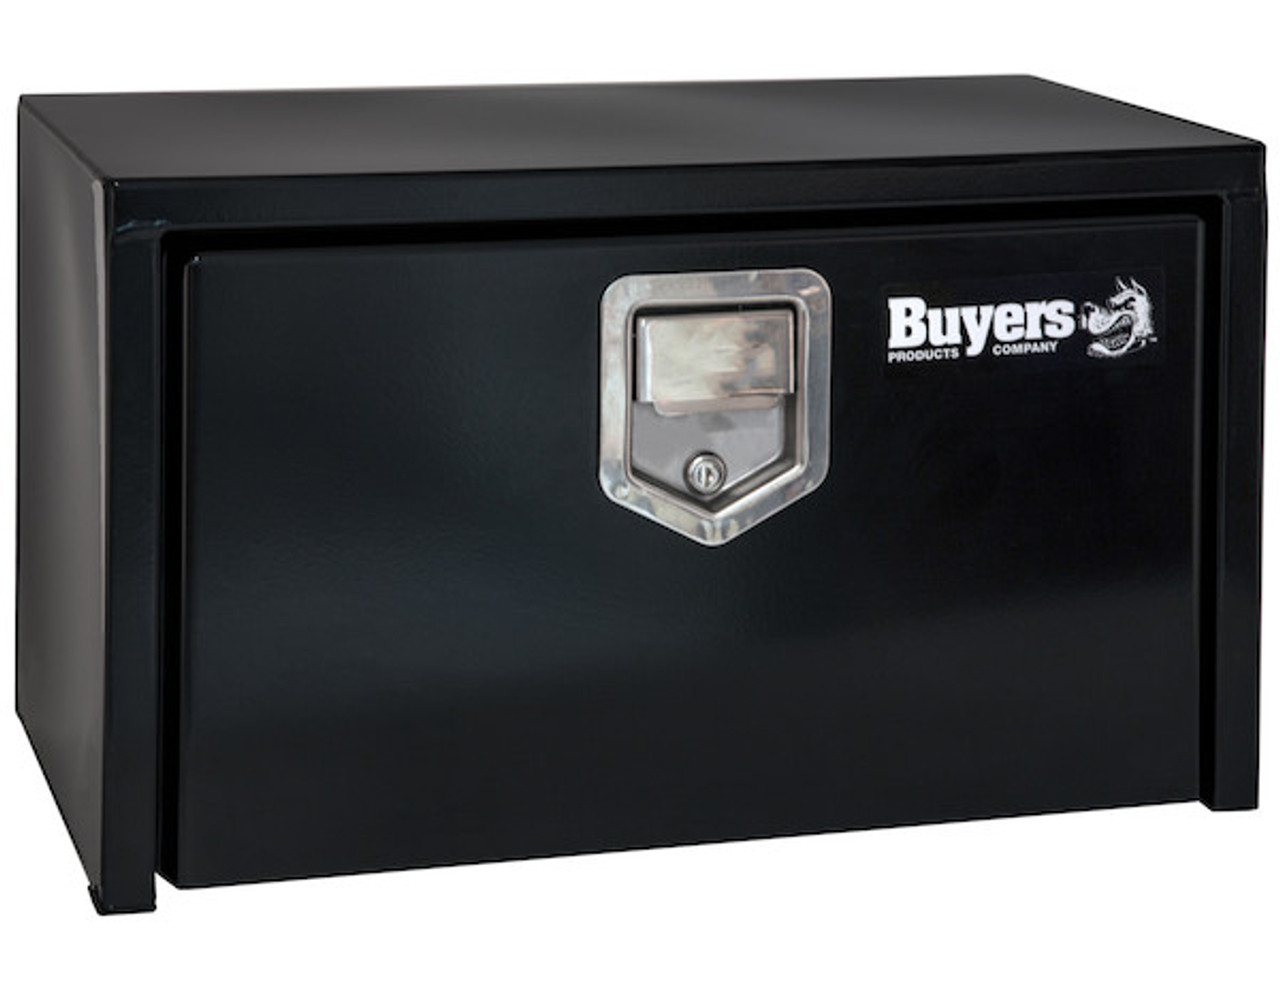 "1702105 BUYERS PRODUCTS BLACK STEEL UNDERBODY TRUCK TOOLBOX WITH PADDLE LATCH TOOLBOX 18""HX18""DX36""W"